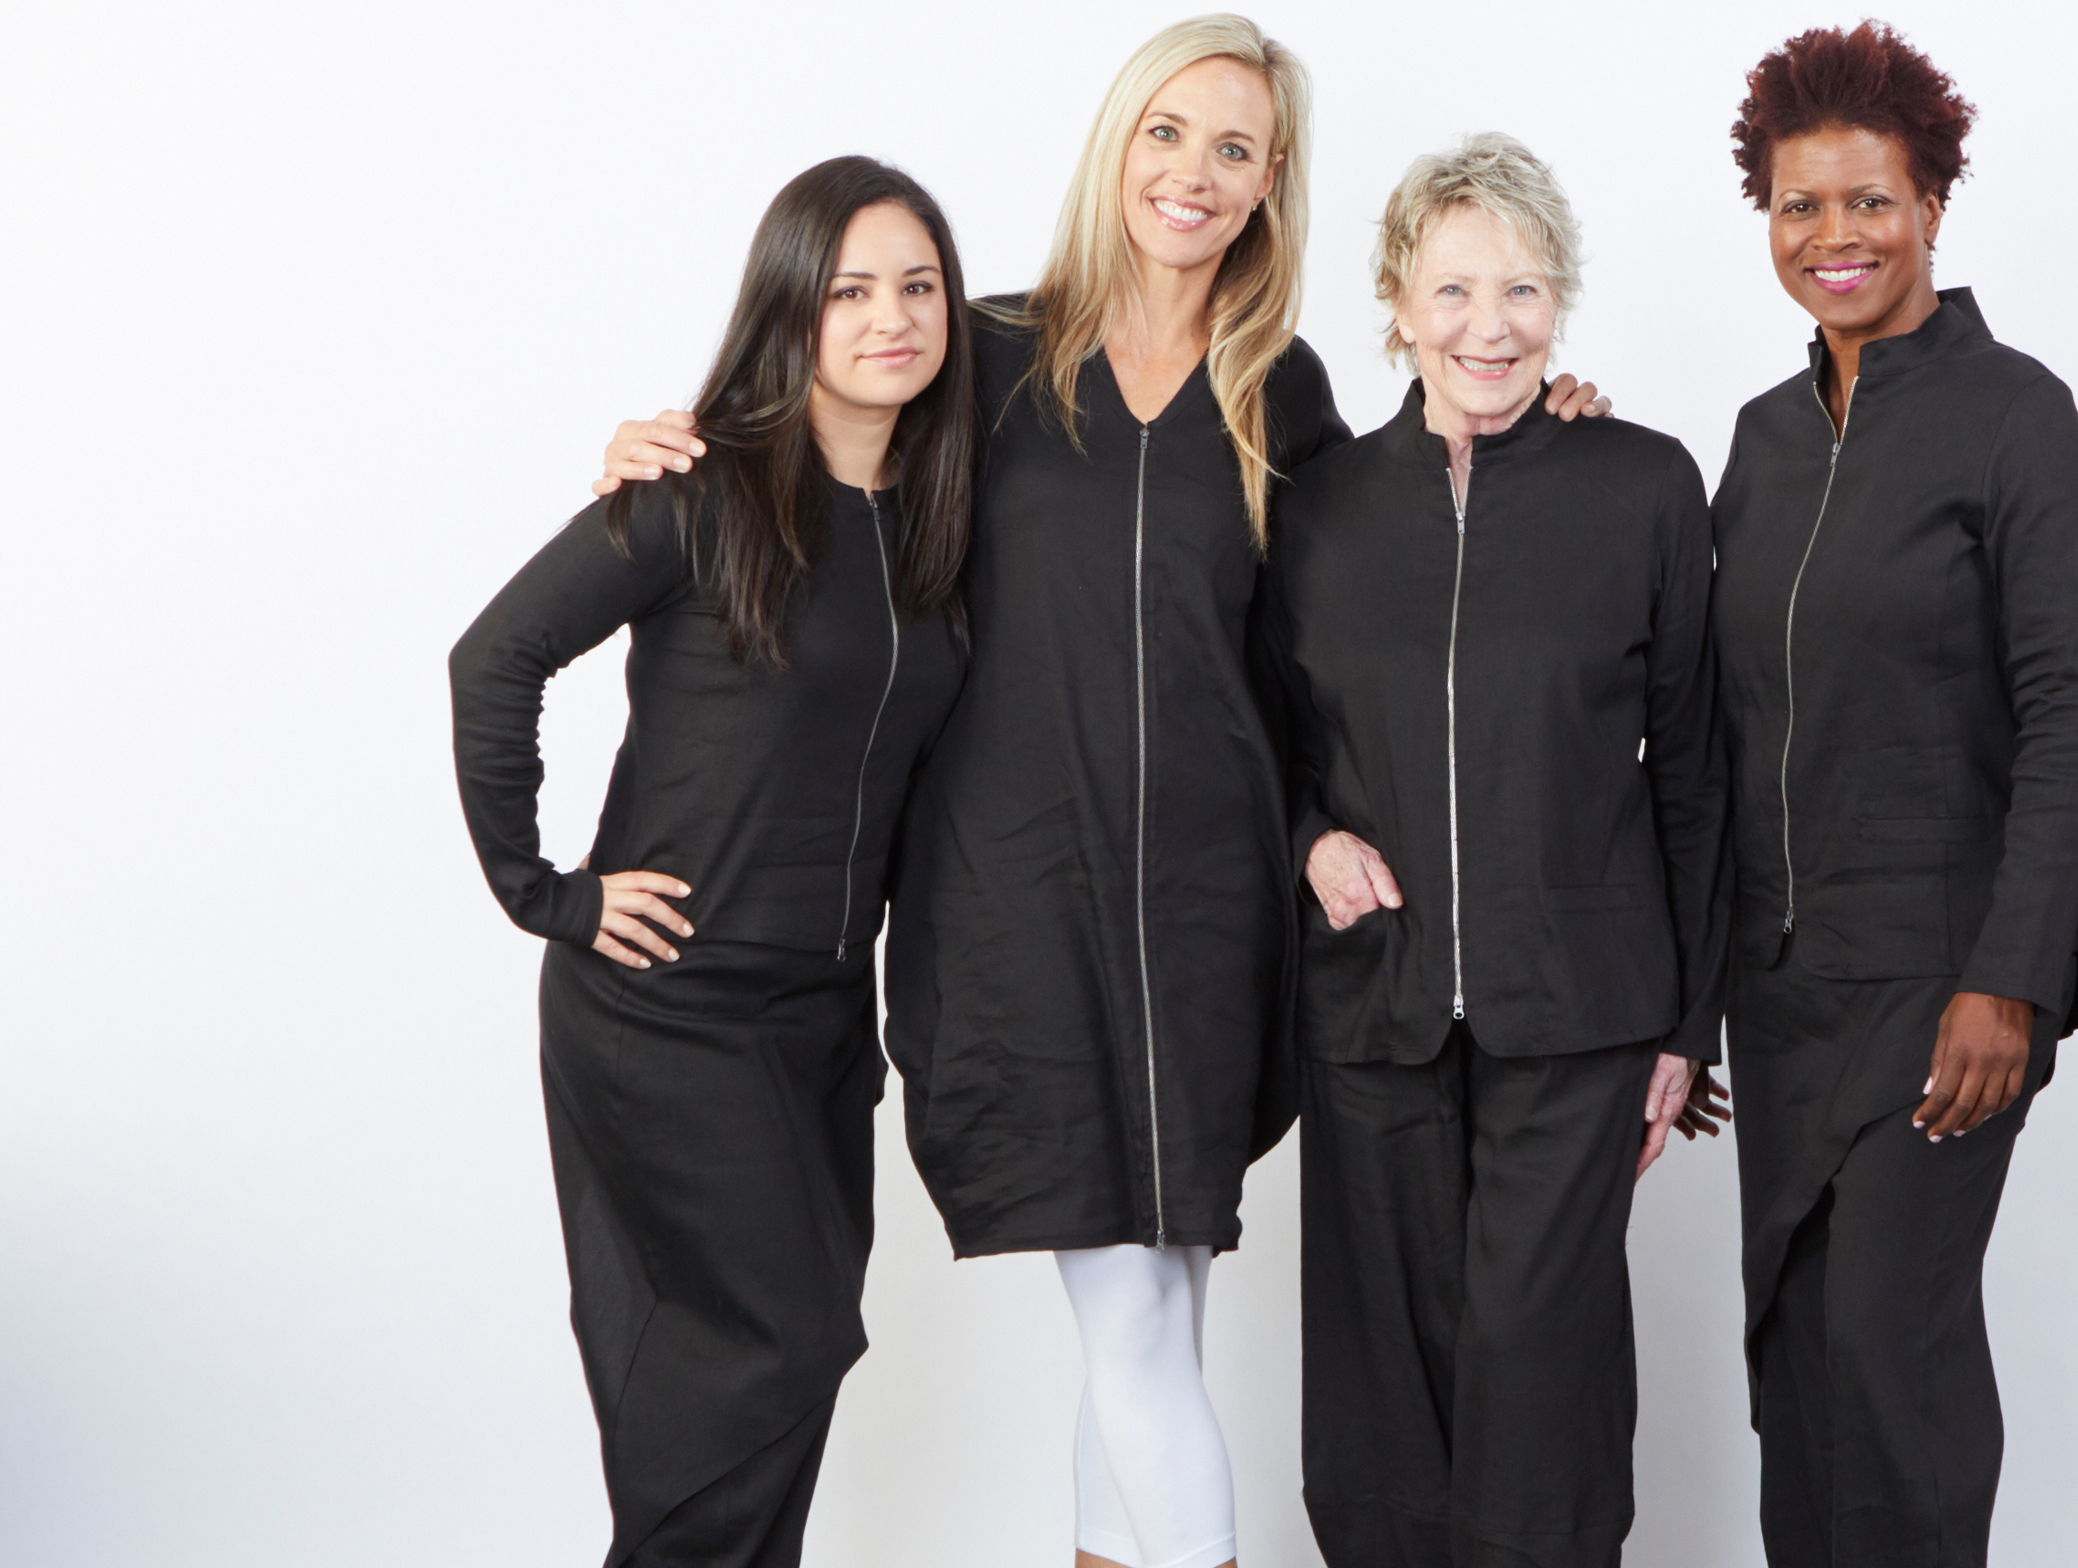 Betz Jacket, Mathias Jacket, Hayden Vest, Sofia Pant, Oliver Pant in Black Ready for Bologna, Legging in White Bamboo Cotton